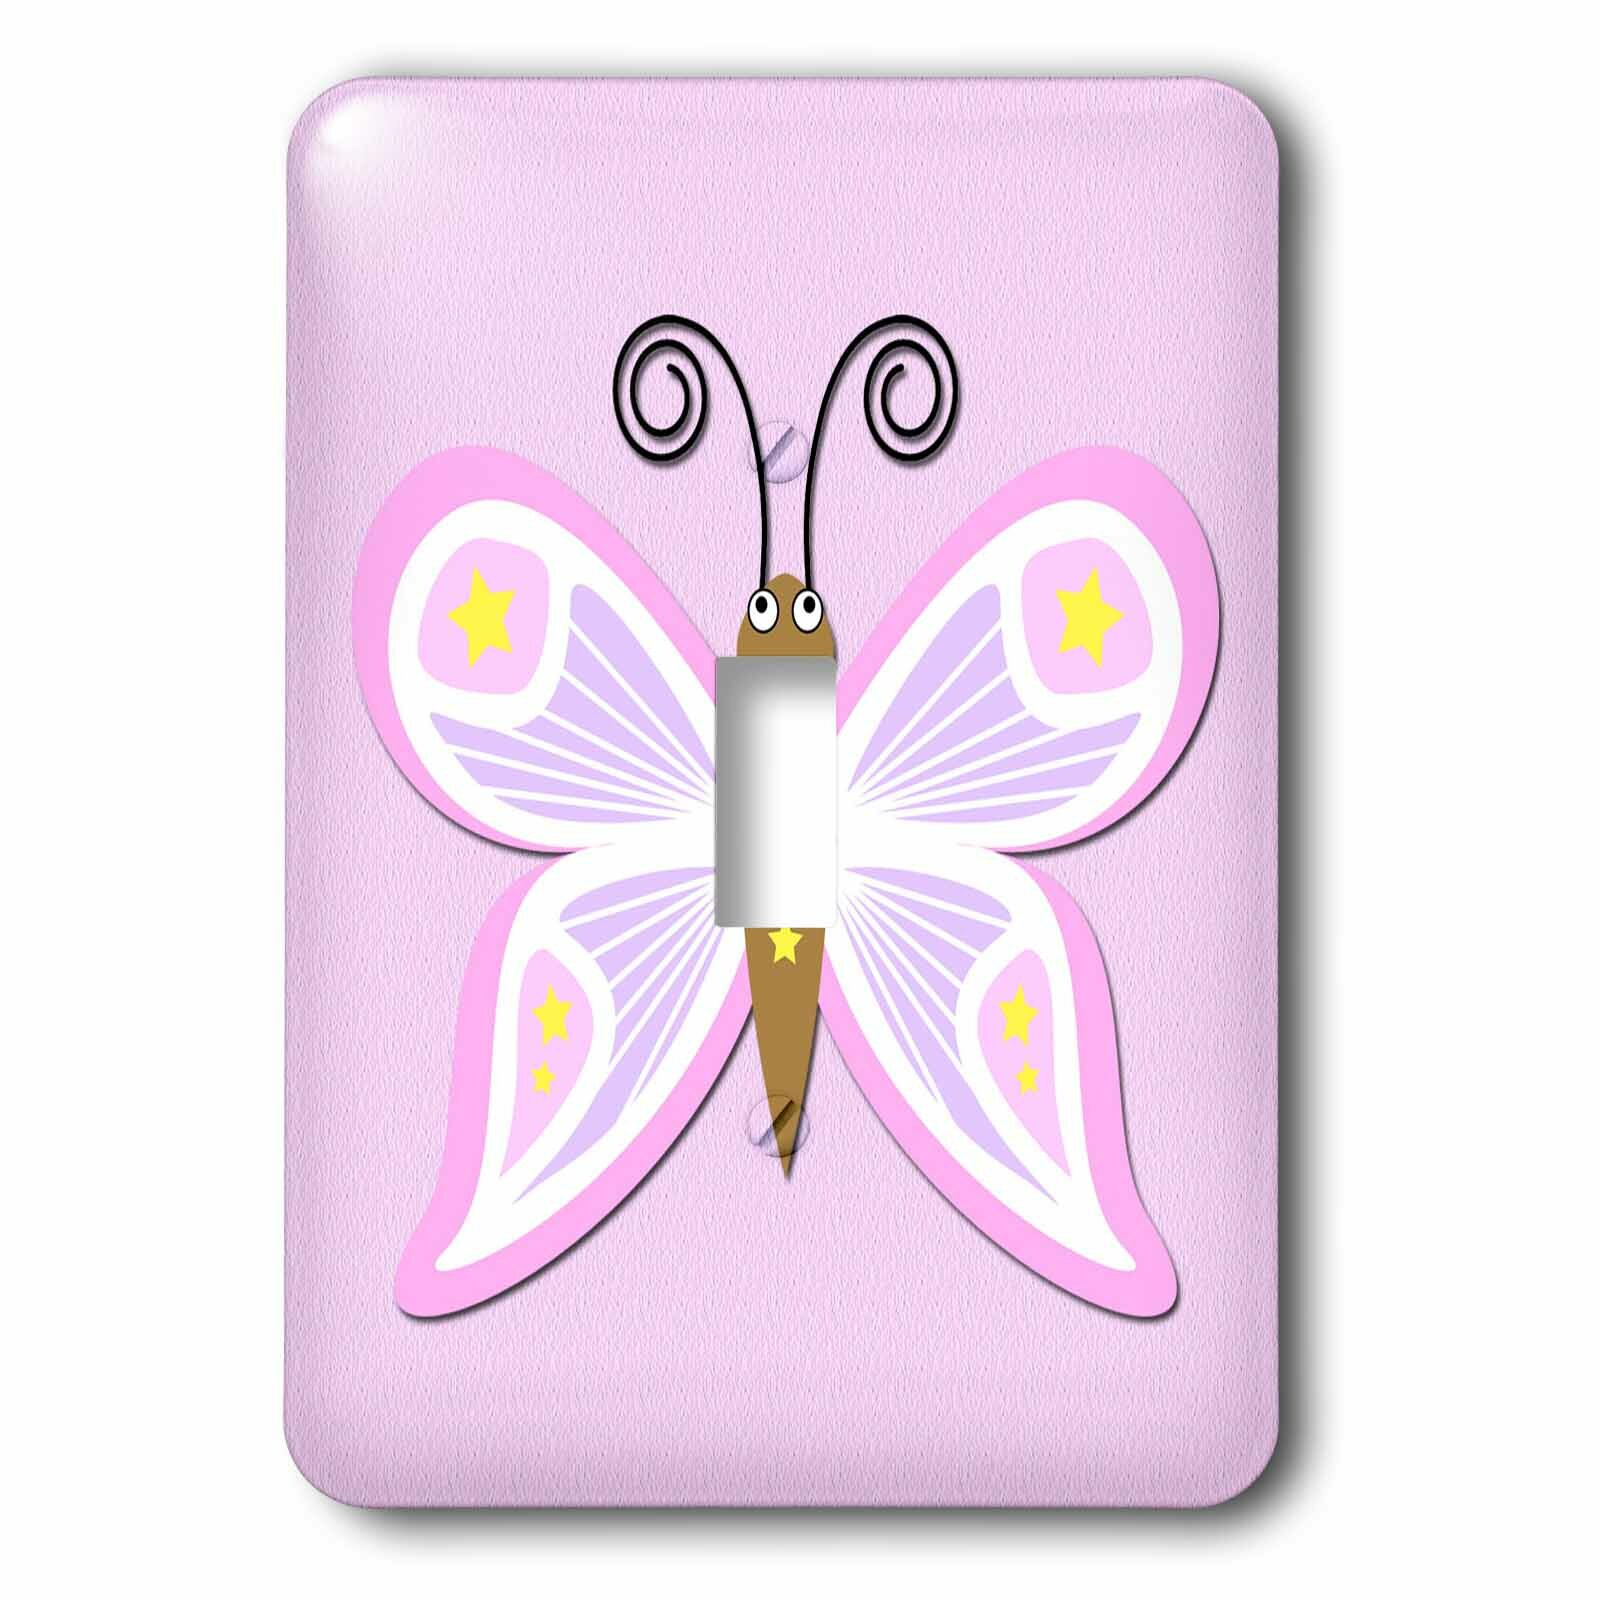 Single Rocker Wall Switch Outlet Cover Plate Decor Wallplate Pink Butterfly Tools Home Improvement Switch Plates